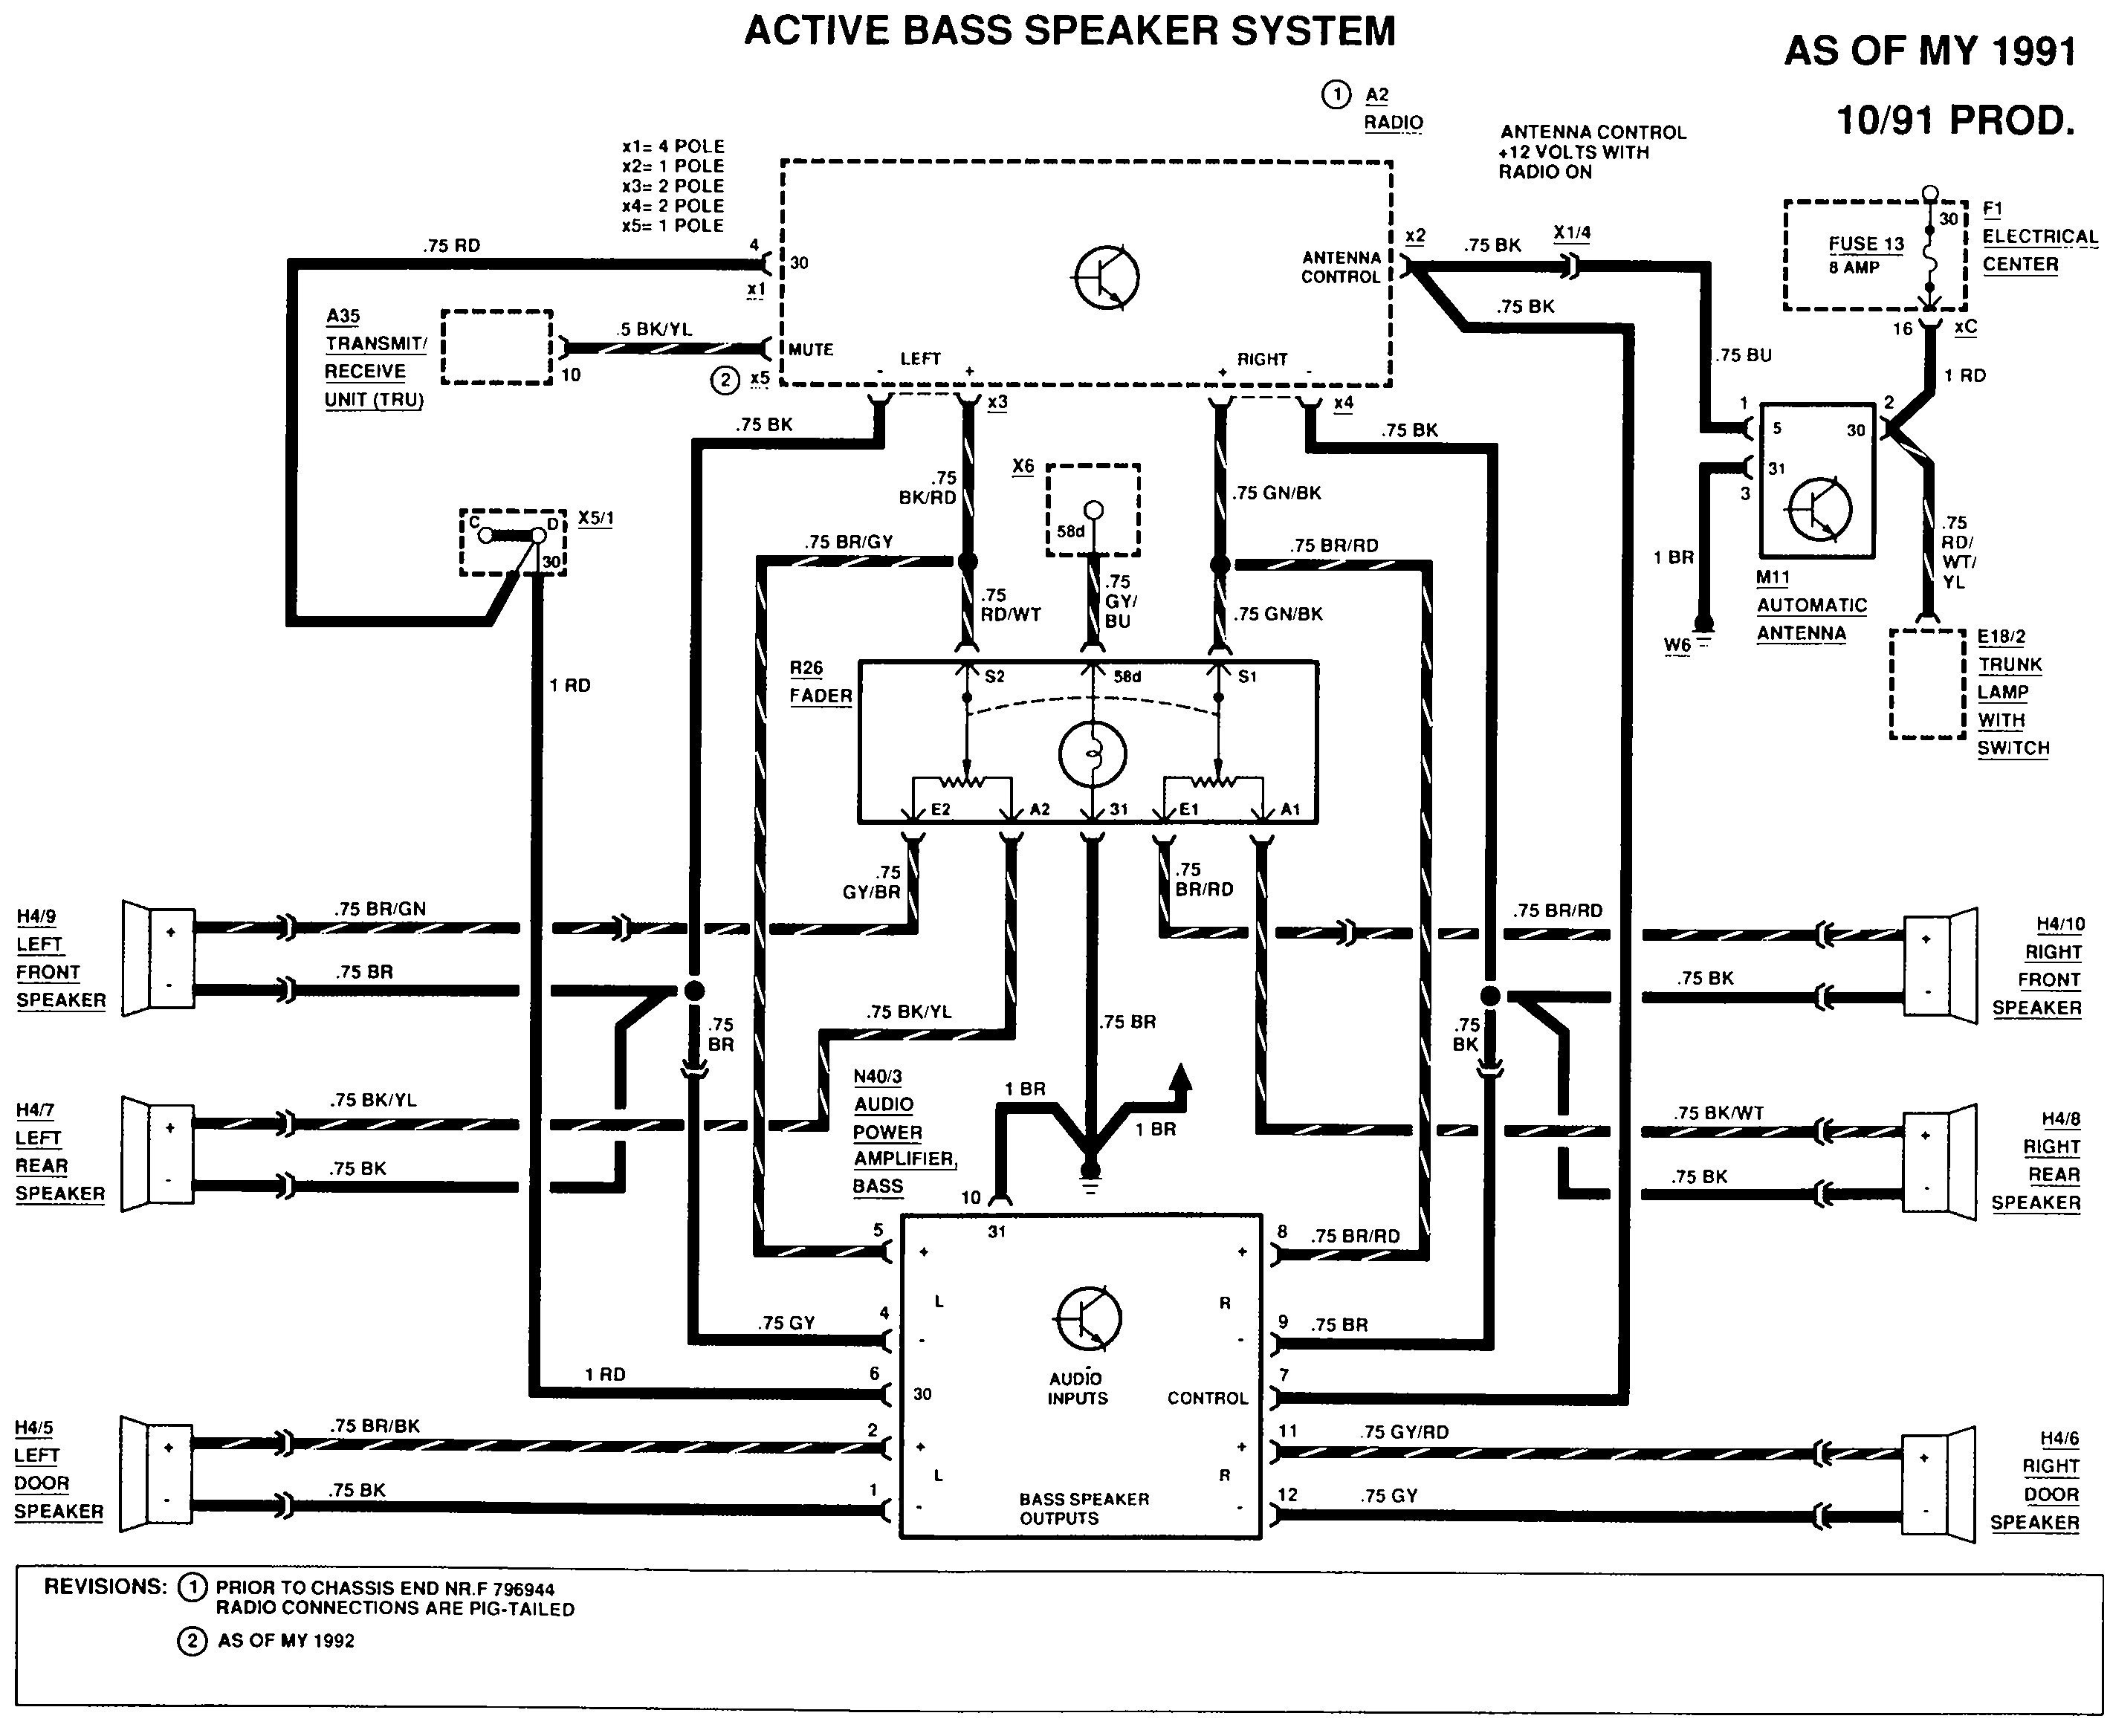 Mercedes Benz Engine Diagram Mercedes Benz Cruise Control Wiring Diagram Data Wiring Diagrams • Of Mercedes Benz Engine Diagram Wiring Diagram Auto Alarm Best Best Mercedes Benz Wiring Diagrams